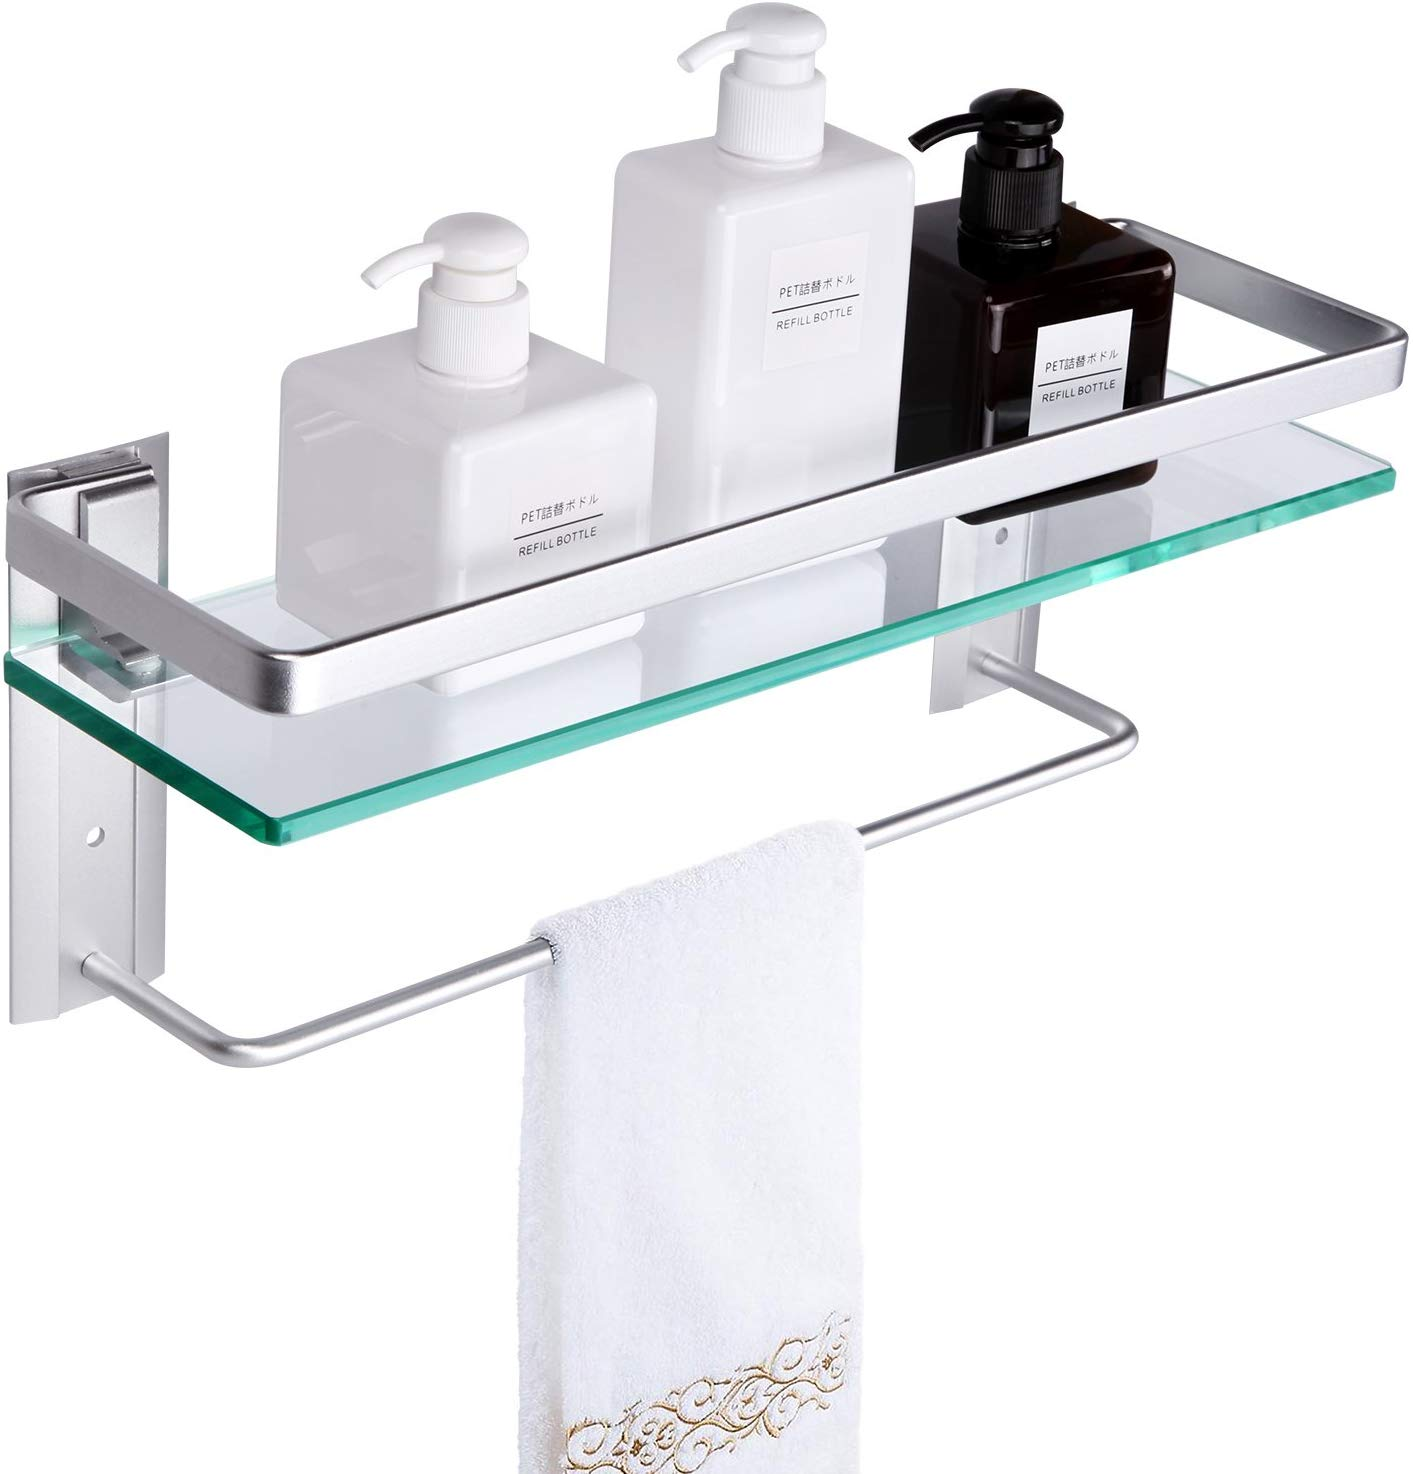 Vdomus Tempered Glass Bathroom Shelf with Towel Bar